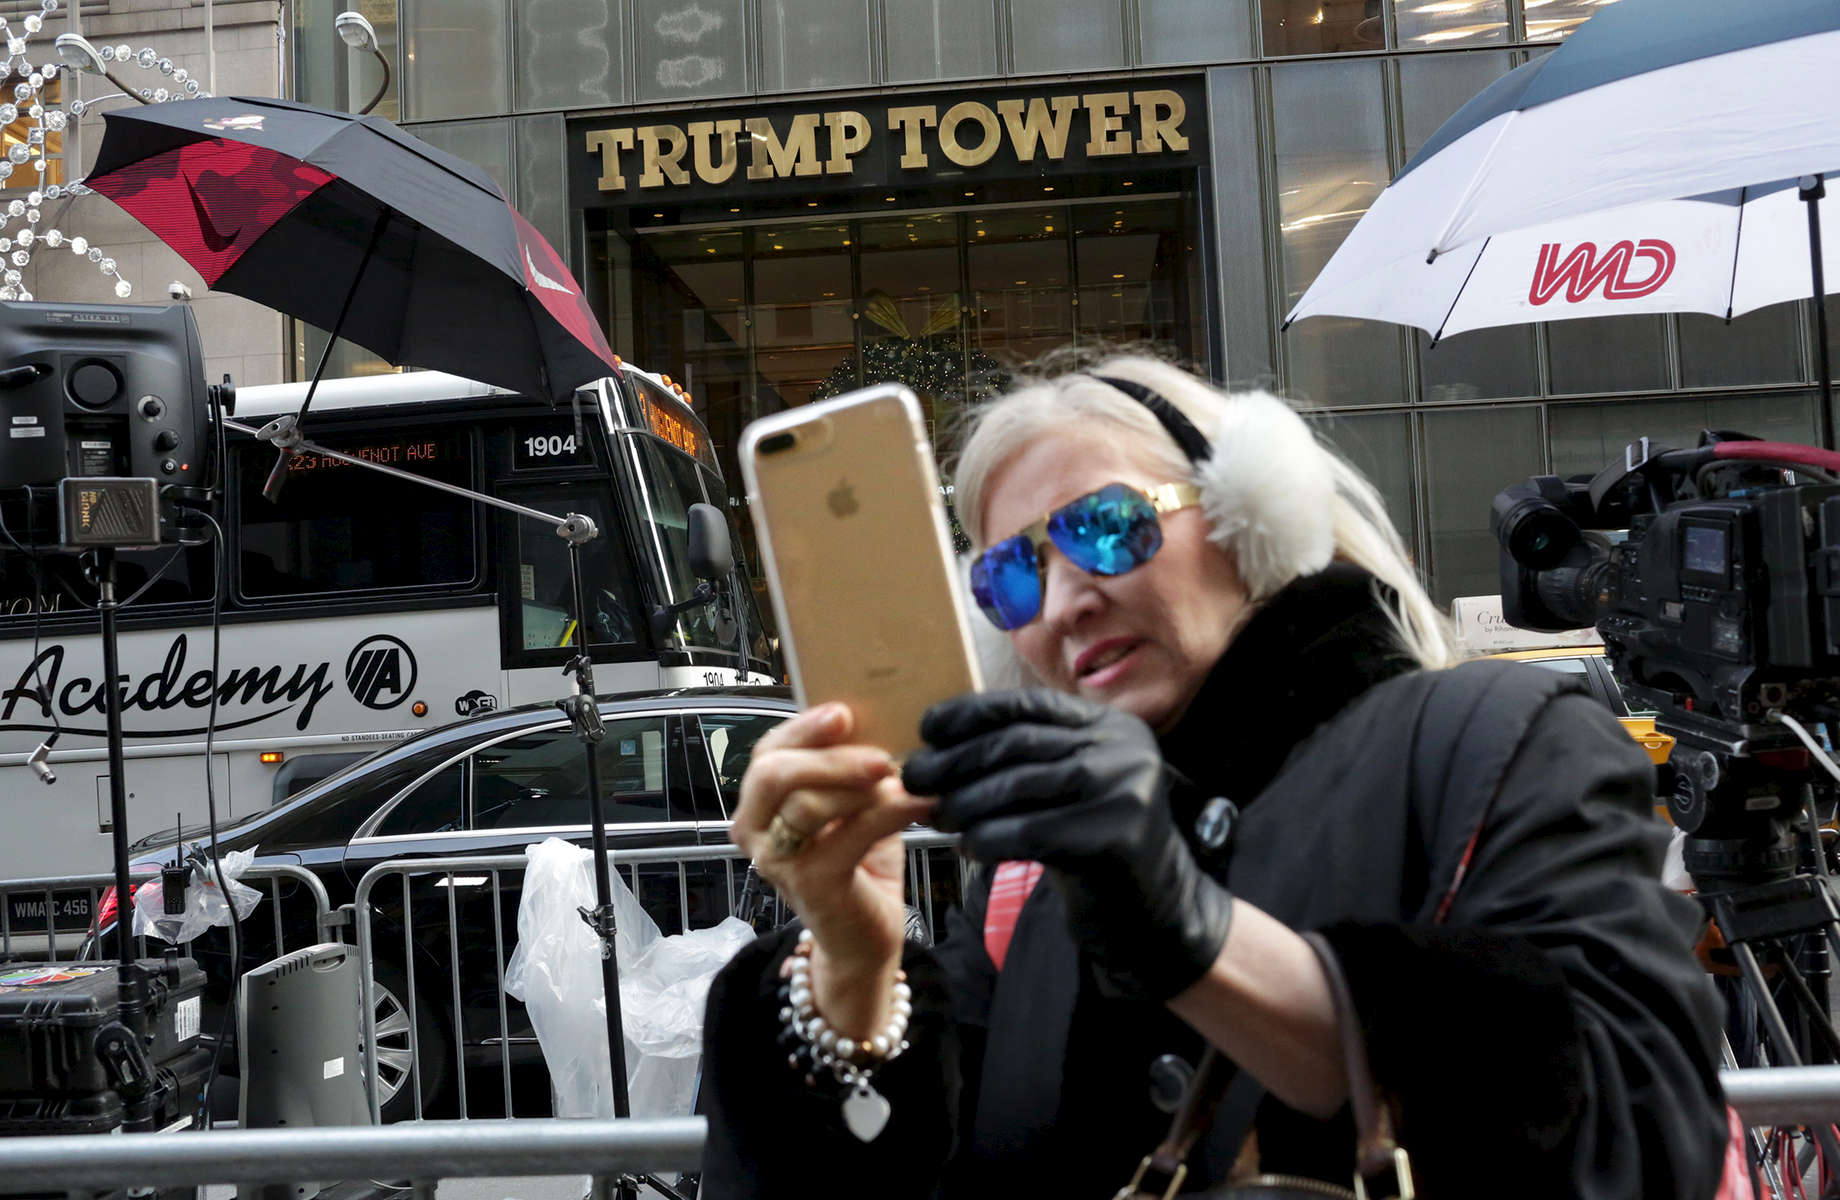 Debra Tomarin takes selfie in front of Trump Tower, the current residence of Republican President elect Donald Trump, in New York, NY on December 08, 2016. Tomarin is a real estate agent and retired psychotherapist - and lives in Palm Beach, FL, down the street from Trump's Florida residence, Mar-a-Lago. On people protesting Trump's nomination of Oklahoma Attorney General Scott Pruitt as the head of the Environmental Protection Agency - a man who has sued the EPA more than a dozen times to block air, water and climate protections - outside of Trump Tower, she said: {quote}Protesting is irrelevant and wrong, and won't make a difference. He won't even see it, and people don't stop to pay attention. We have to move on. It's too late to sell anti-Donald Trump buttons. They should be asked to leave. Sure, they have a right to be out here, but what about his right to live in a home without someone standing in front of it with a sign?{quote}On climate change, she said, {quote}I believe climate change is real. I am not concerned about this because of his choices of cabinet people and because his children understand climate change is real. But maybe he hasn't been paying attention so far, being so busy with his business, and now he has to.{quote}On Pruitt as the choice to lead the EPA, she said: {quote}Pruitt as the head of the EPA is an interesting appointee. I think that's making a statement that he'll turn this guy around. This guy, Pruitt, is aware of climate change despite being against it. Trump did this because he's gotta please the people. Trump has a strategy - he takes the underdog and turns him around because he likes a challenge. Sometimes people do the opposite of what they want to do, because they like a challenge. There's a method to his madness. You don't want a guy you can just push over, and he wants a challenge in this guy. This is his strategy - who's going to pay attention to a guy who is simply for battling climate change as opposed to a guy who's against it, yet actually ends up battling it? Now that's a wake-up call.{quote}-{quote}Trump Gawkers{quote} is a visceral look at what draws people to Trump Tower, through in-depth interviews and still photos - a project I started the day after the election. At first, I simply followed where my assignments sent me, but then found myself returning to the place on my own, unable to look away - and I wasn't alone. Hoards of people undertake the trek, bearing security and weather roadblocks, to stare, gawk, absorb, record. The magnetism to Trump Tower (and by extension, to the man in the tower,) manifests in the sheer numbers of daily visitors, as well as in the fascination etched across their faces. Upon first look, the time so many spend there seems like sport and amusement, but underneath upturned eyes and selfie smiles prevails an undercurrent of anxiety - and not just for those who didn't want Trump in the Oval Office. Some of the electorate that voted against Hillary is now unsure for which version of Trump they voted. People's upward gazes, no matter their political views, seek answers: How could this happen? Or now that it has, what will it mean?